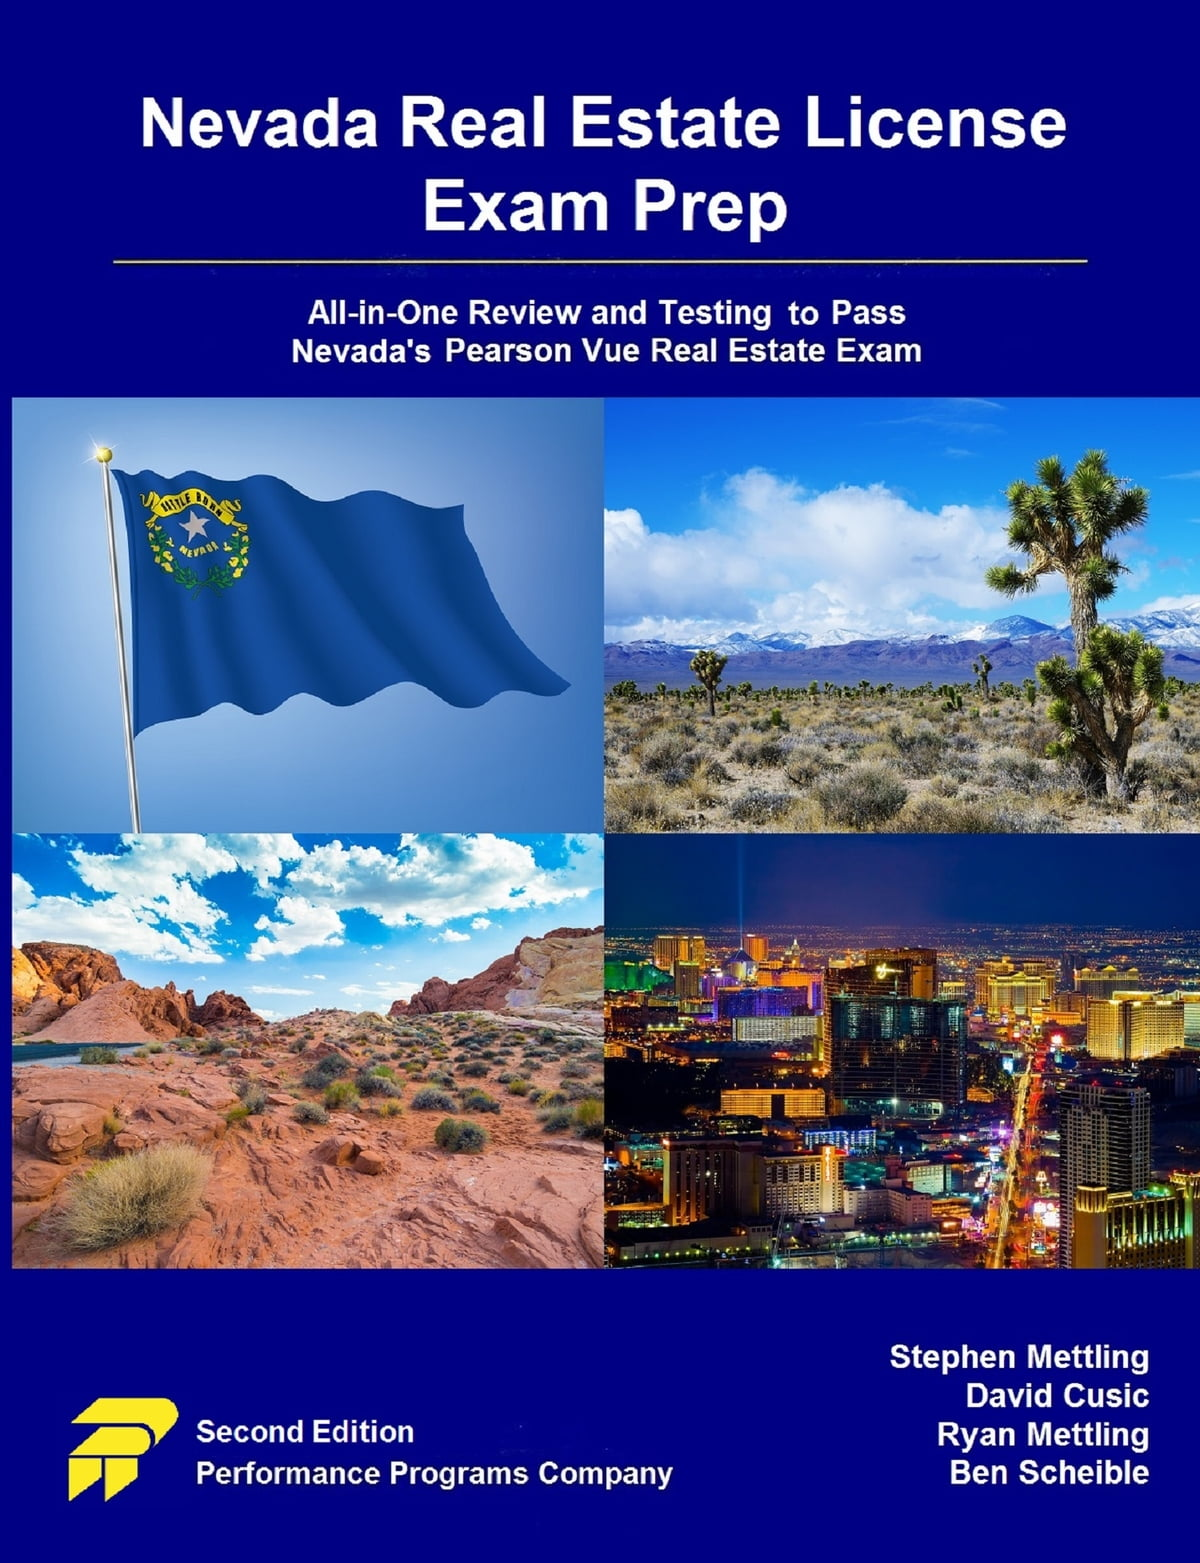 Nevada Real Estate License Exam Prep: All-in-One Review and Testing to Pass  Nevada's Pearson Vue Real Estate Exam ebook by Stephen Mettling - Rakuten